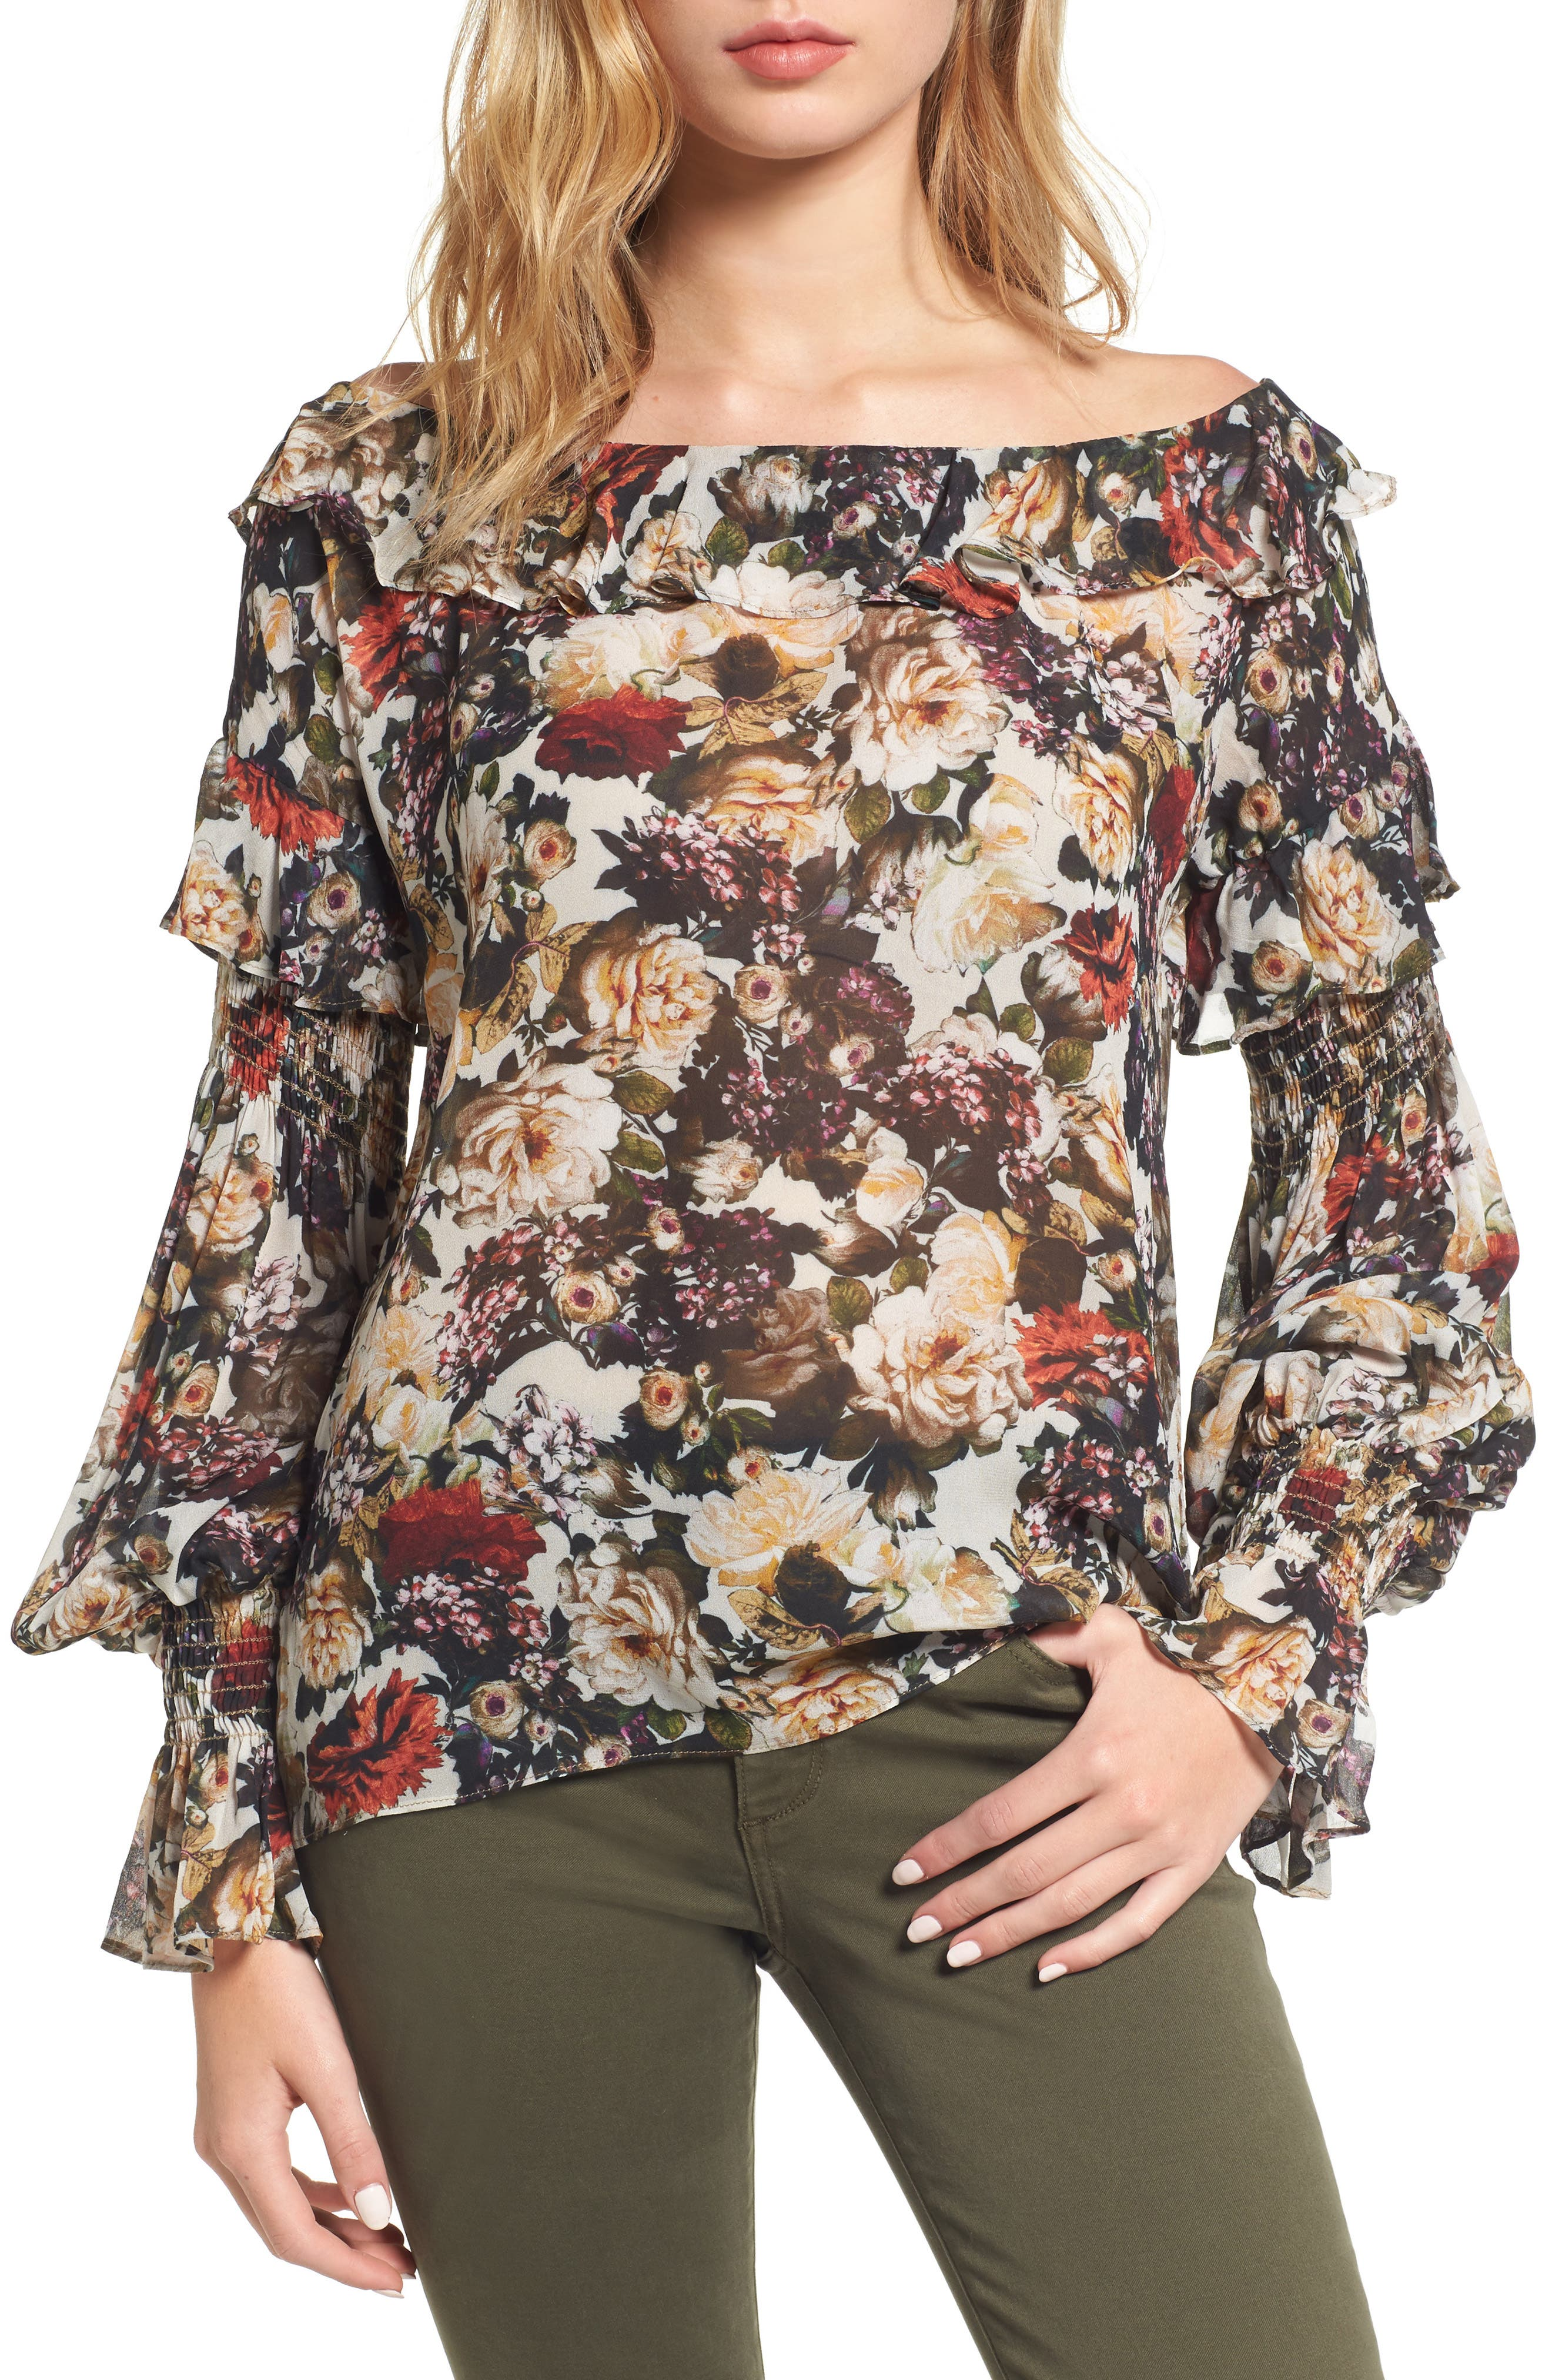 Once Upon a Time Blouse,                         Main,                         color, 245